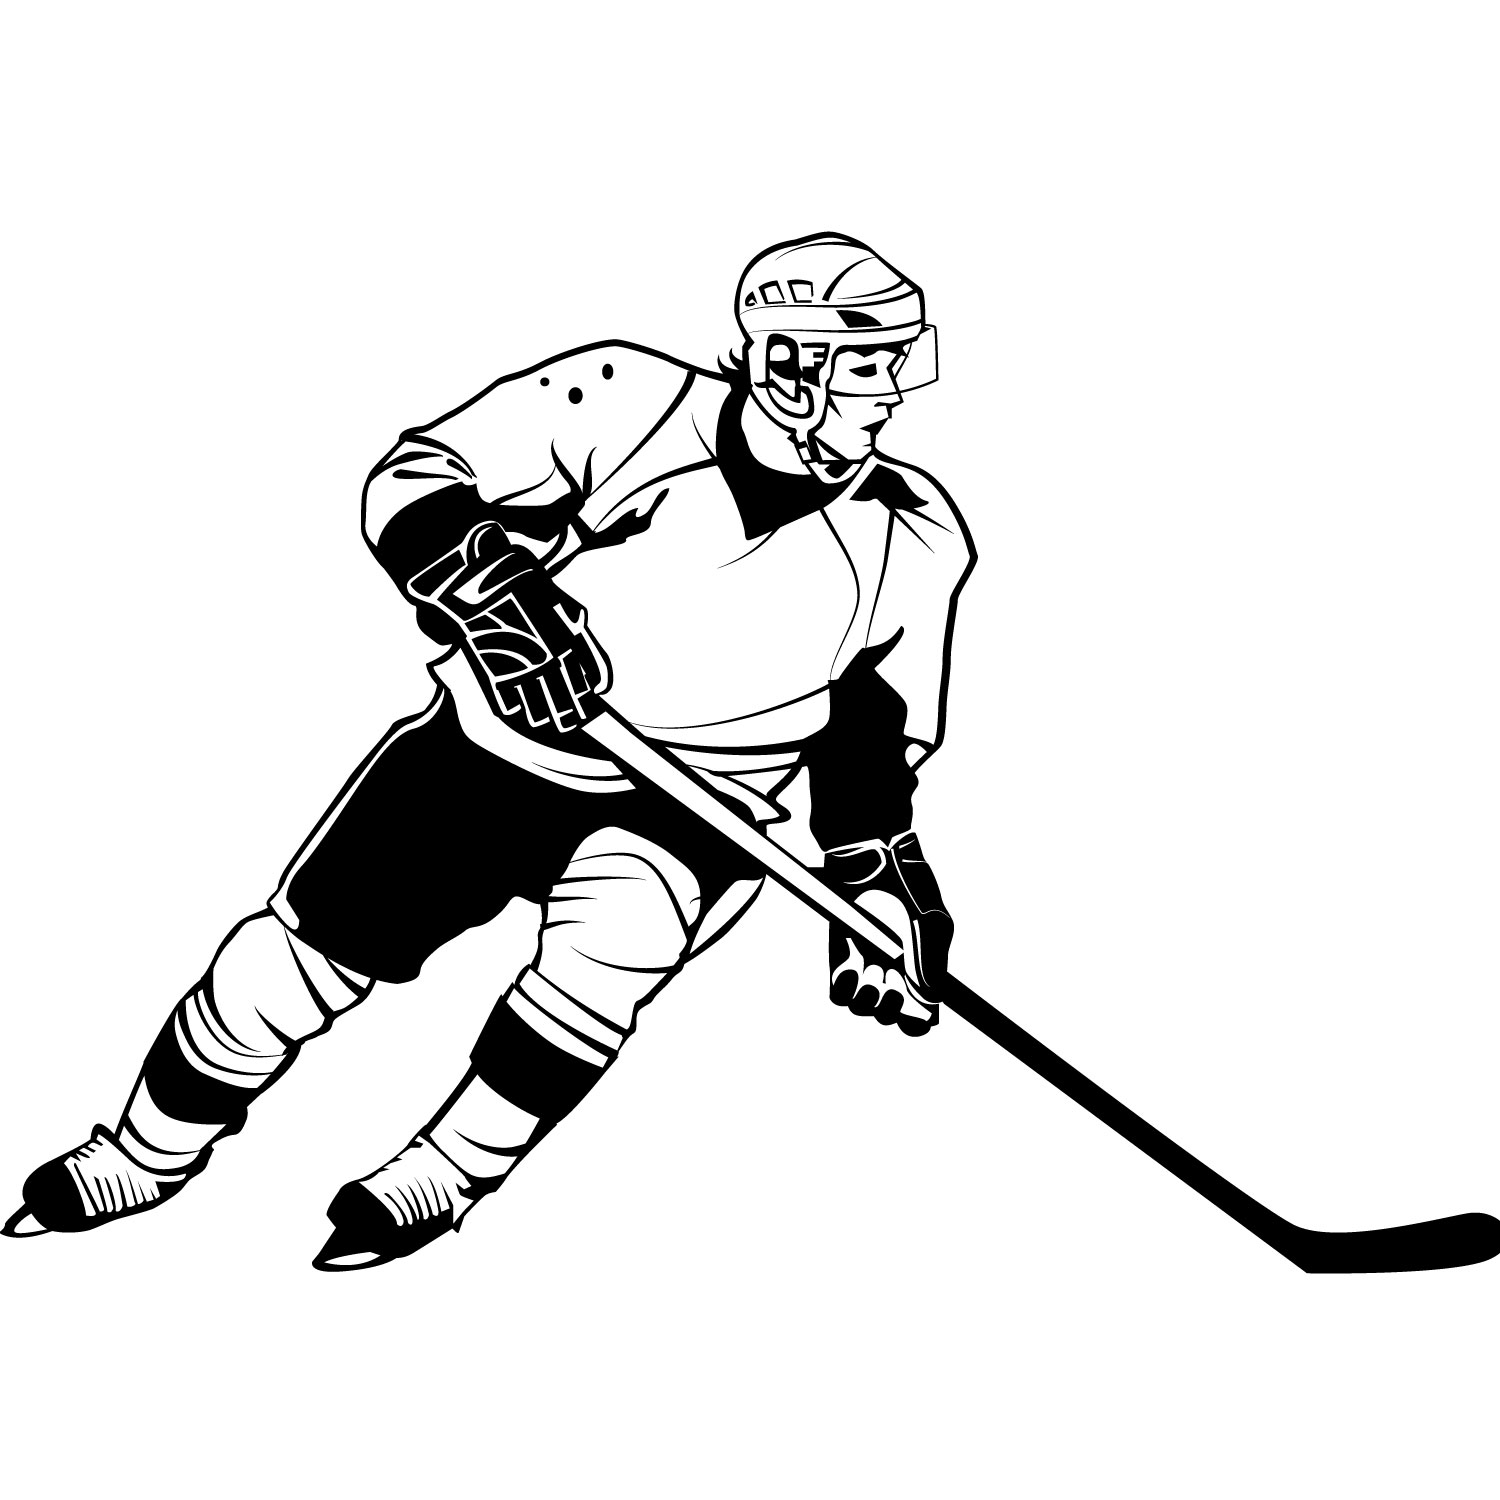 1500x1500 Hockey Clip Art Border Free Clipart Images